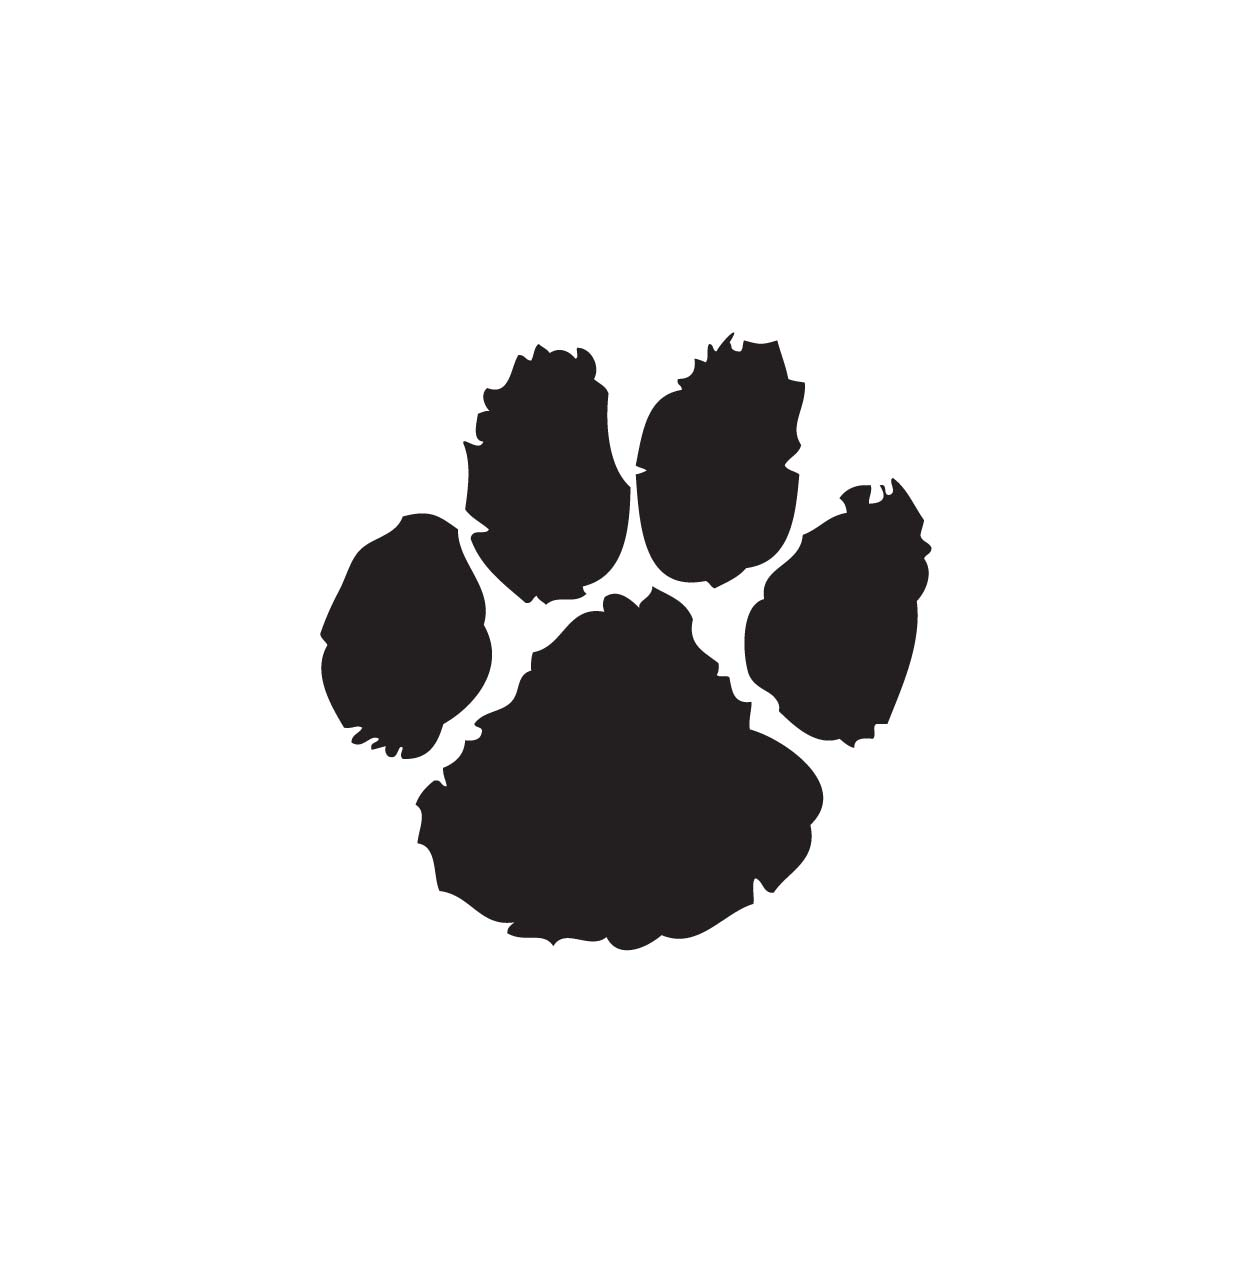 Paw Prints clipart #8, Download drawings